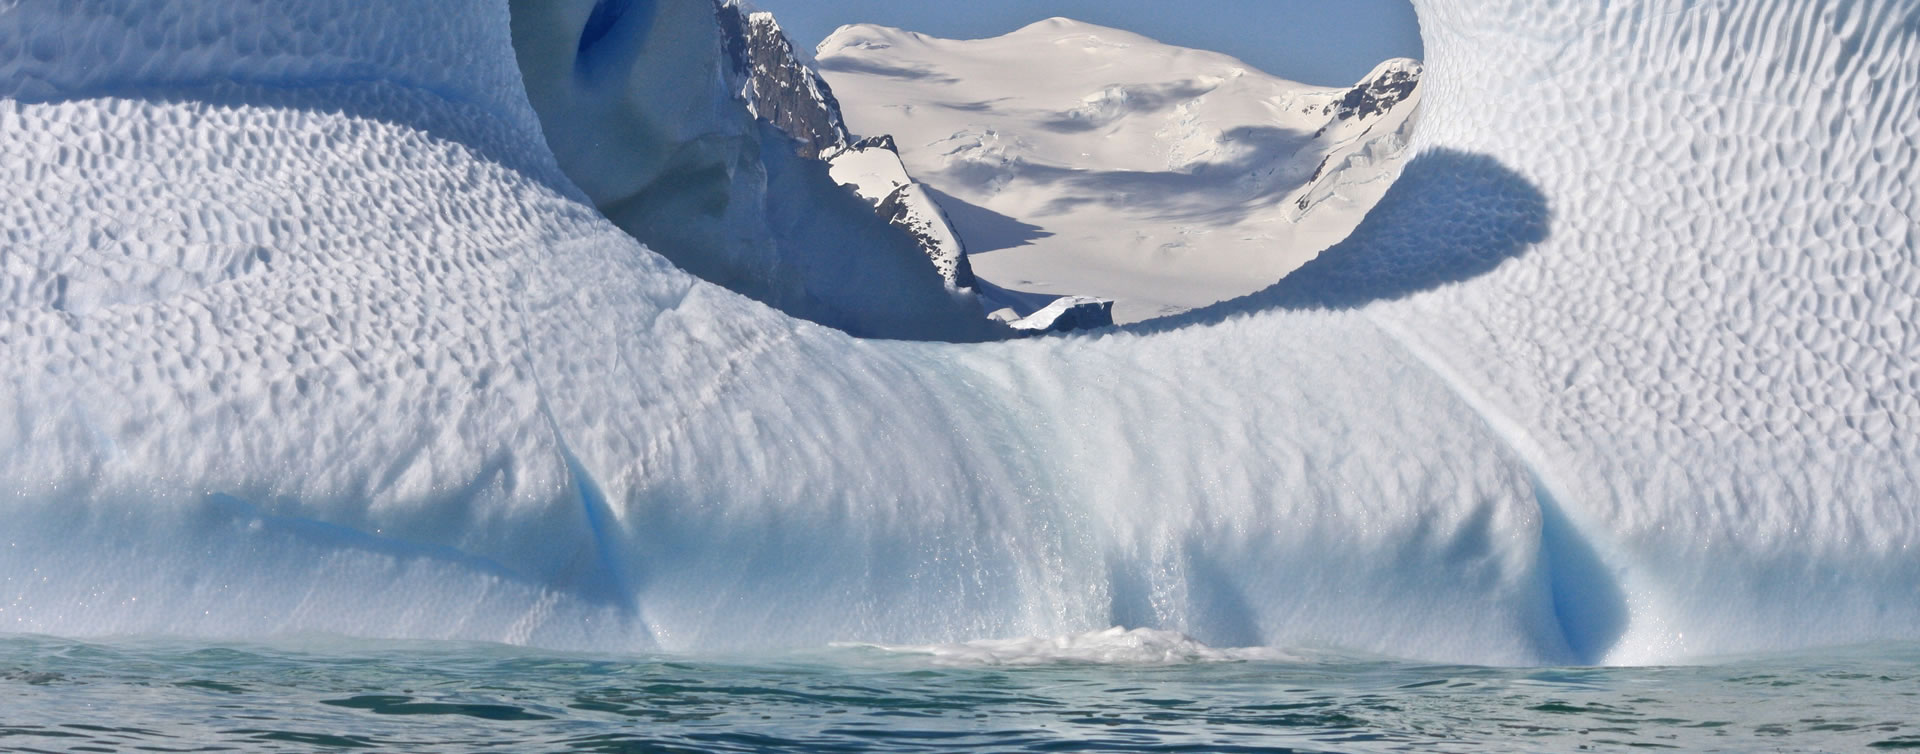 Antarctic Cruise Holidays  Latin America By Last Frontiers